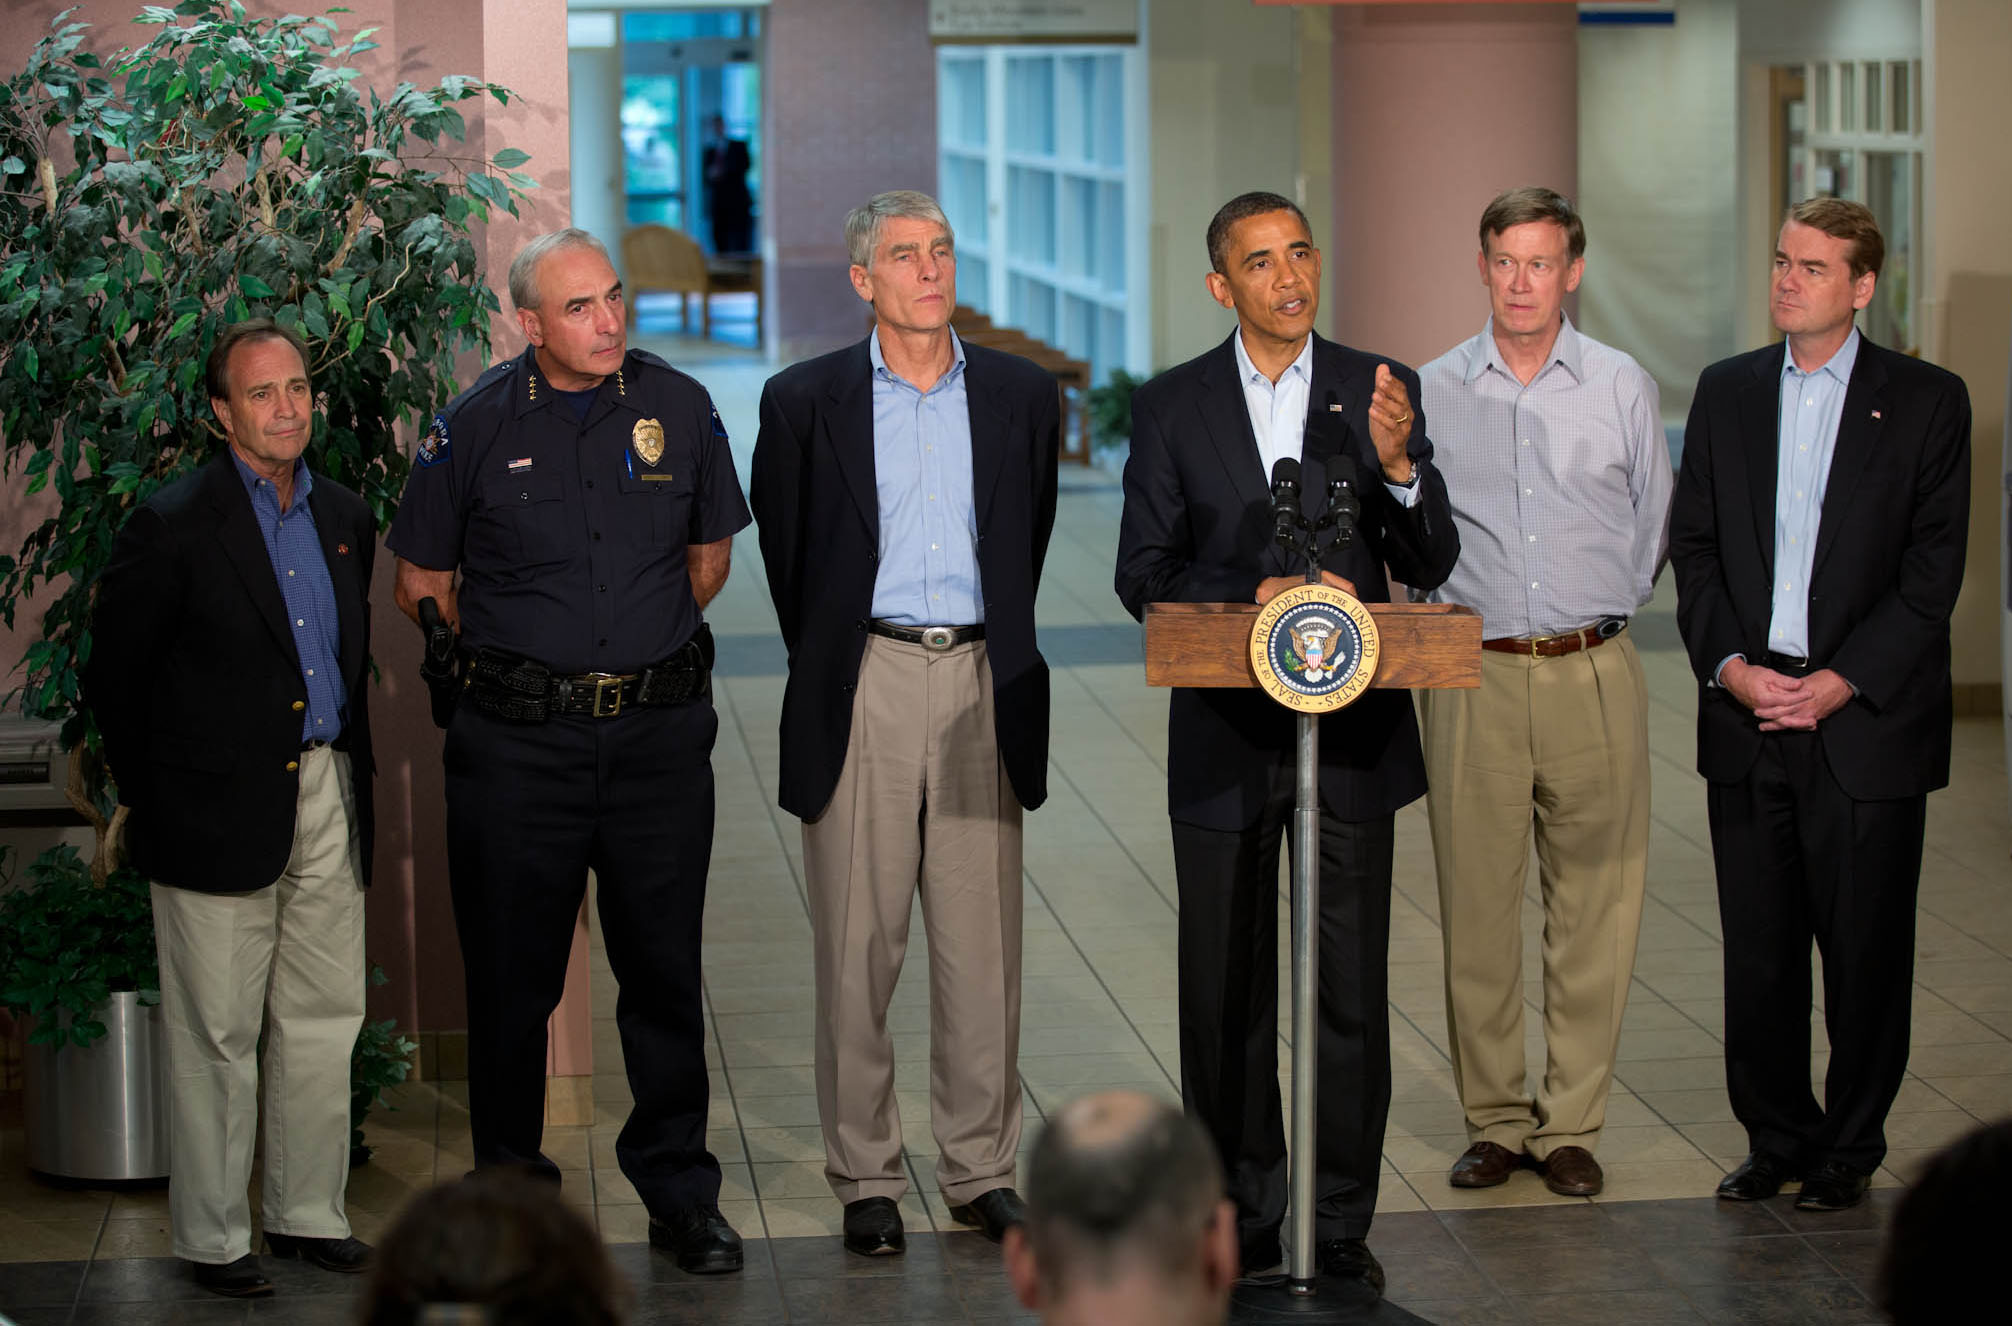 President Barack Obama makes a statement to the press at University of Colorado Hospital in Aurora (July 22, 2012)